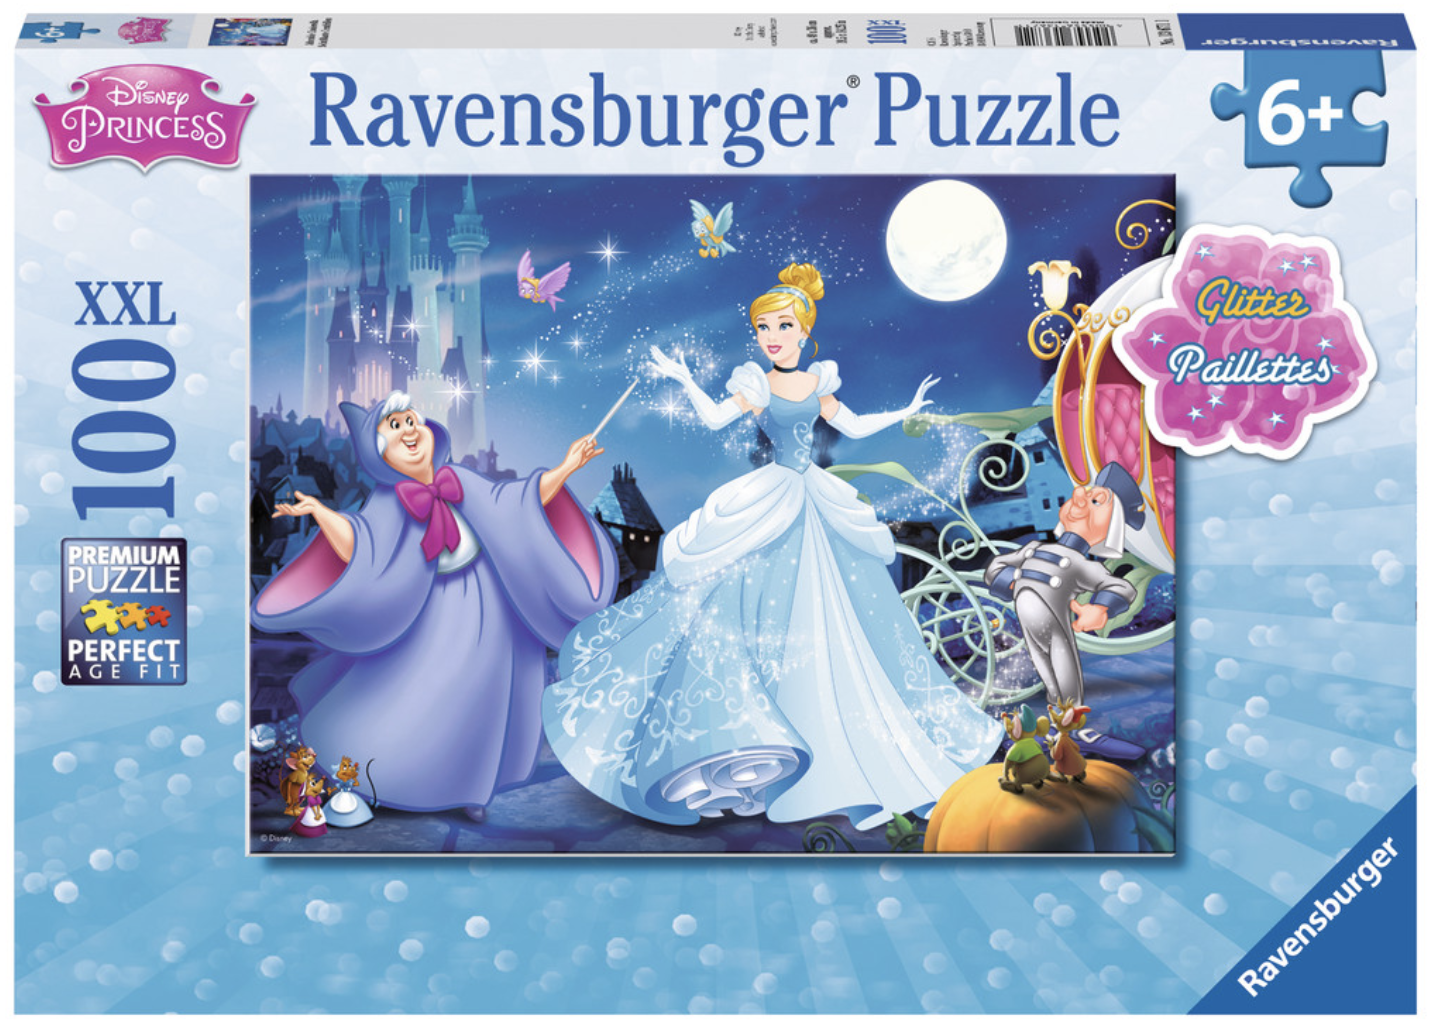 Adorable Disney Cinderella 100 Piece Puzzle by Ravensburger